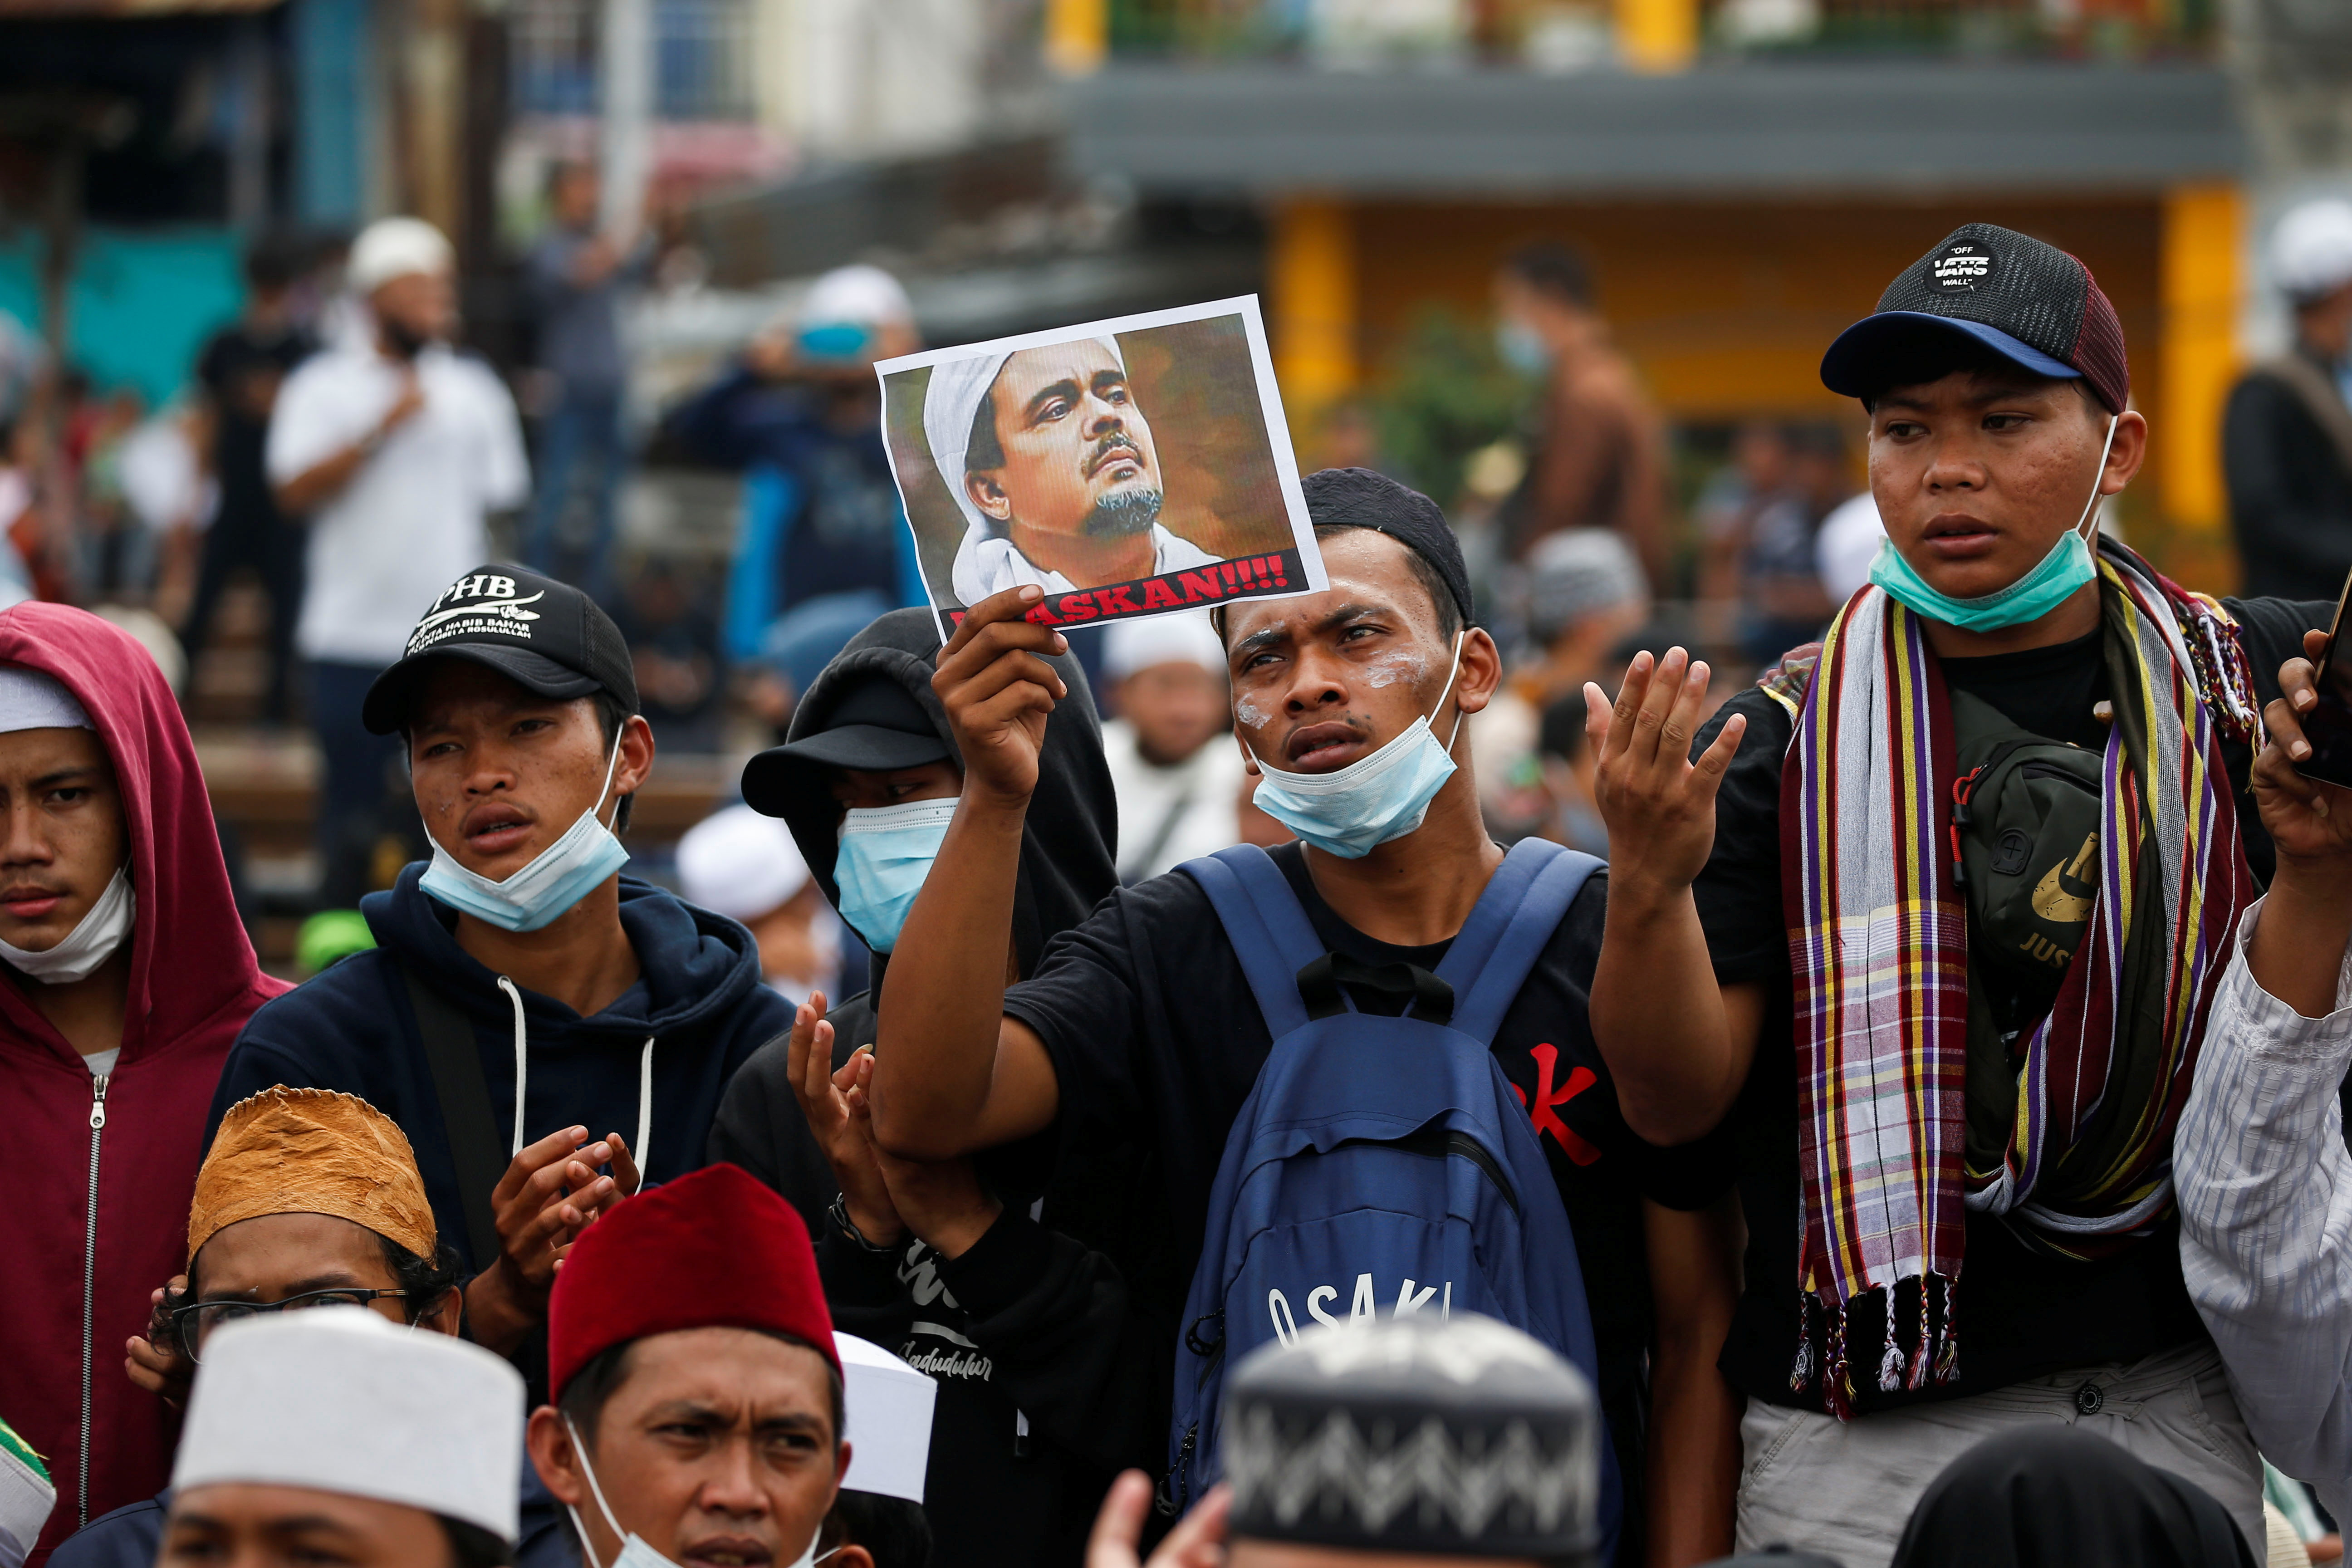 A demonstrator holds a picture of Rizieq Shihab, an Indonesian Islamic cleric who is sentenced for breaching coronavirus disease (COVID-19) curbs after his return last year from self-imposed exile, during a protest supporting him, in Jakarta, Indonesia, June 24, 2021. REUTERS/Willy Kurniawan